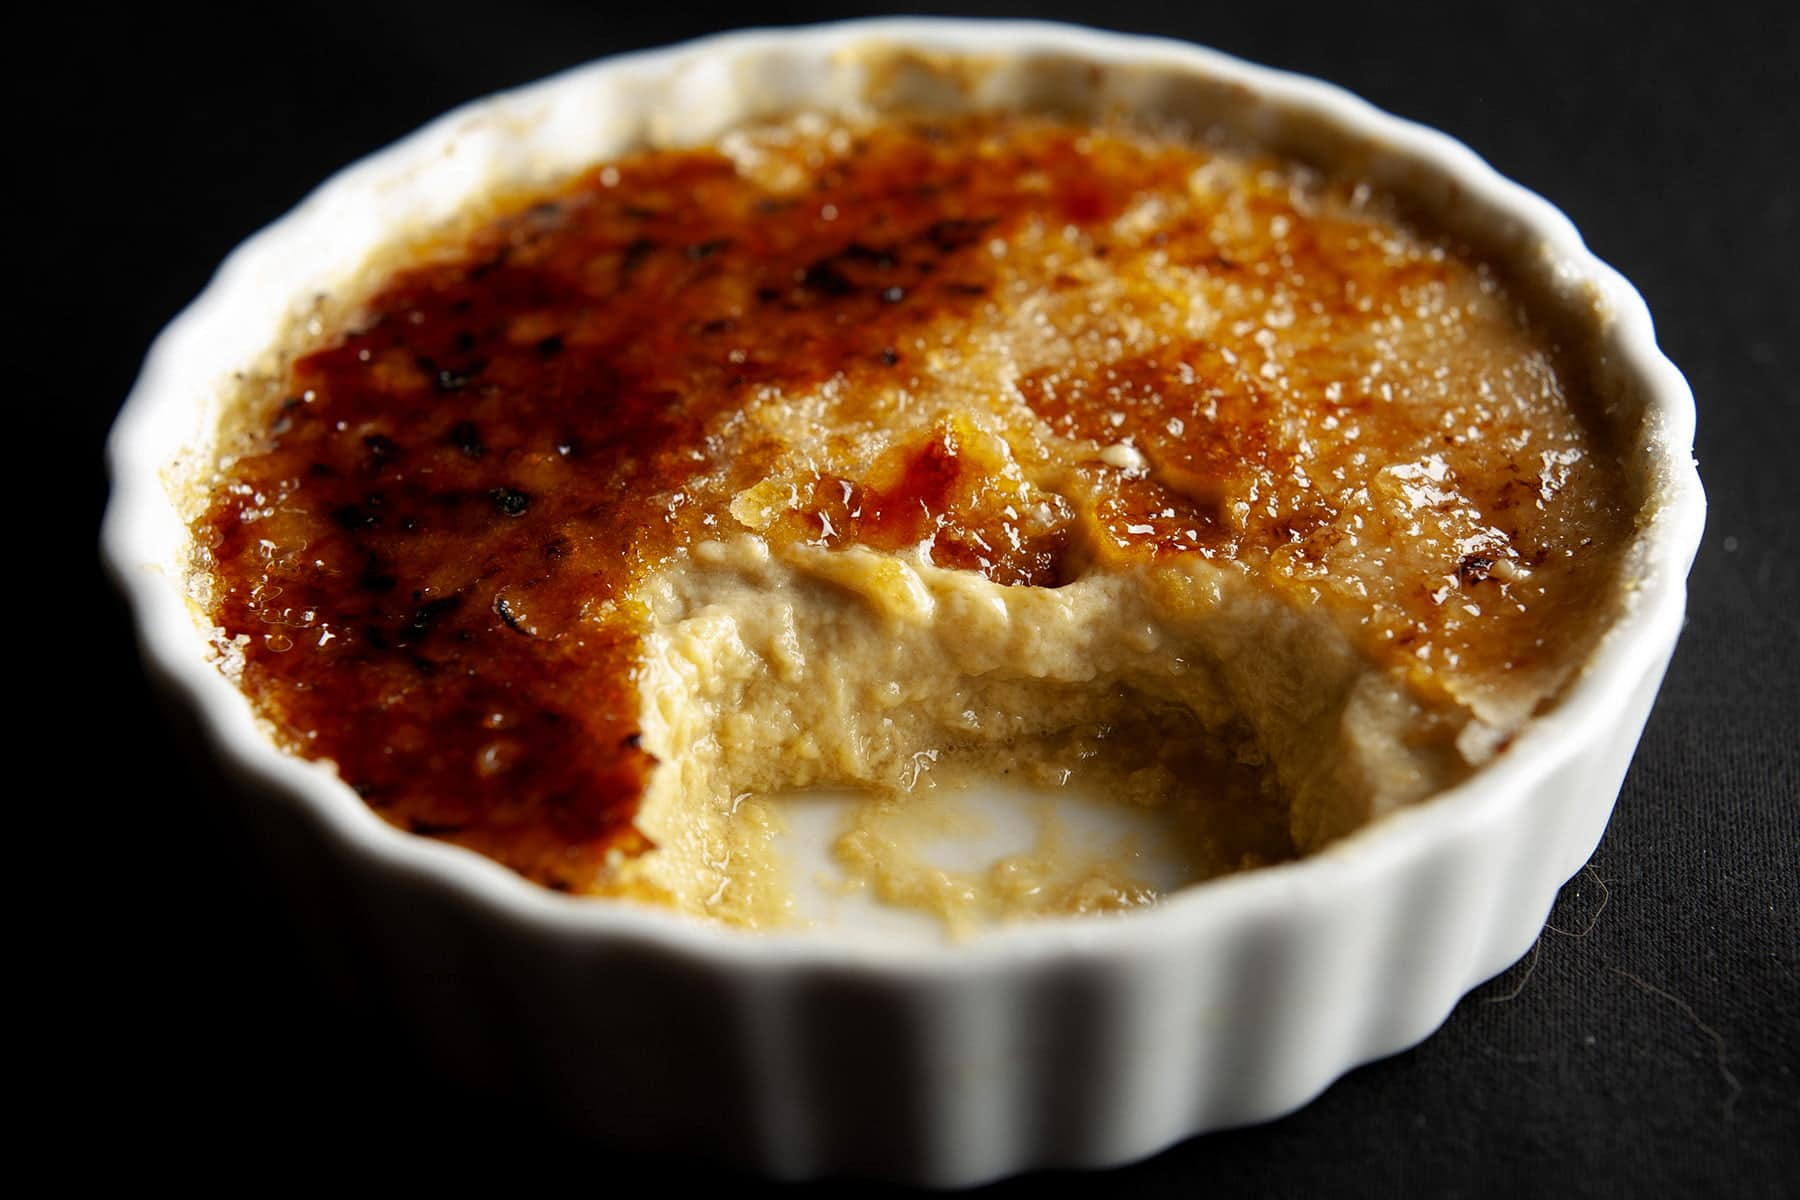 A close up view of a small white ramekin with creme brulee in it. The top is coated with crunchy, golden brown melted sugar, and part of the dessert is missing, having been spooned out and eaten.